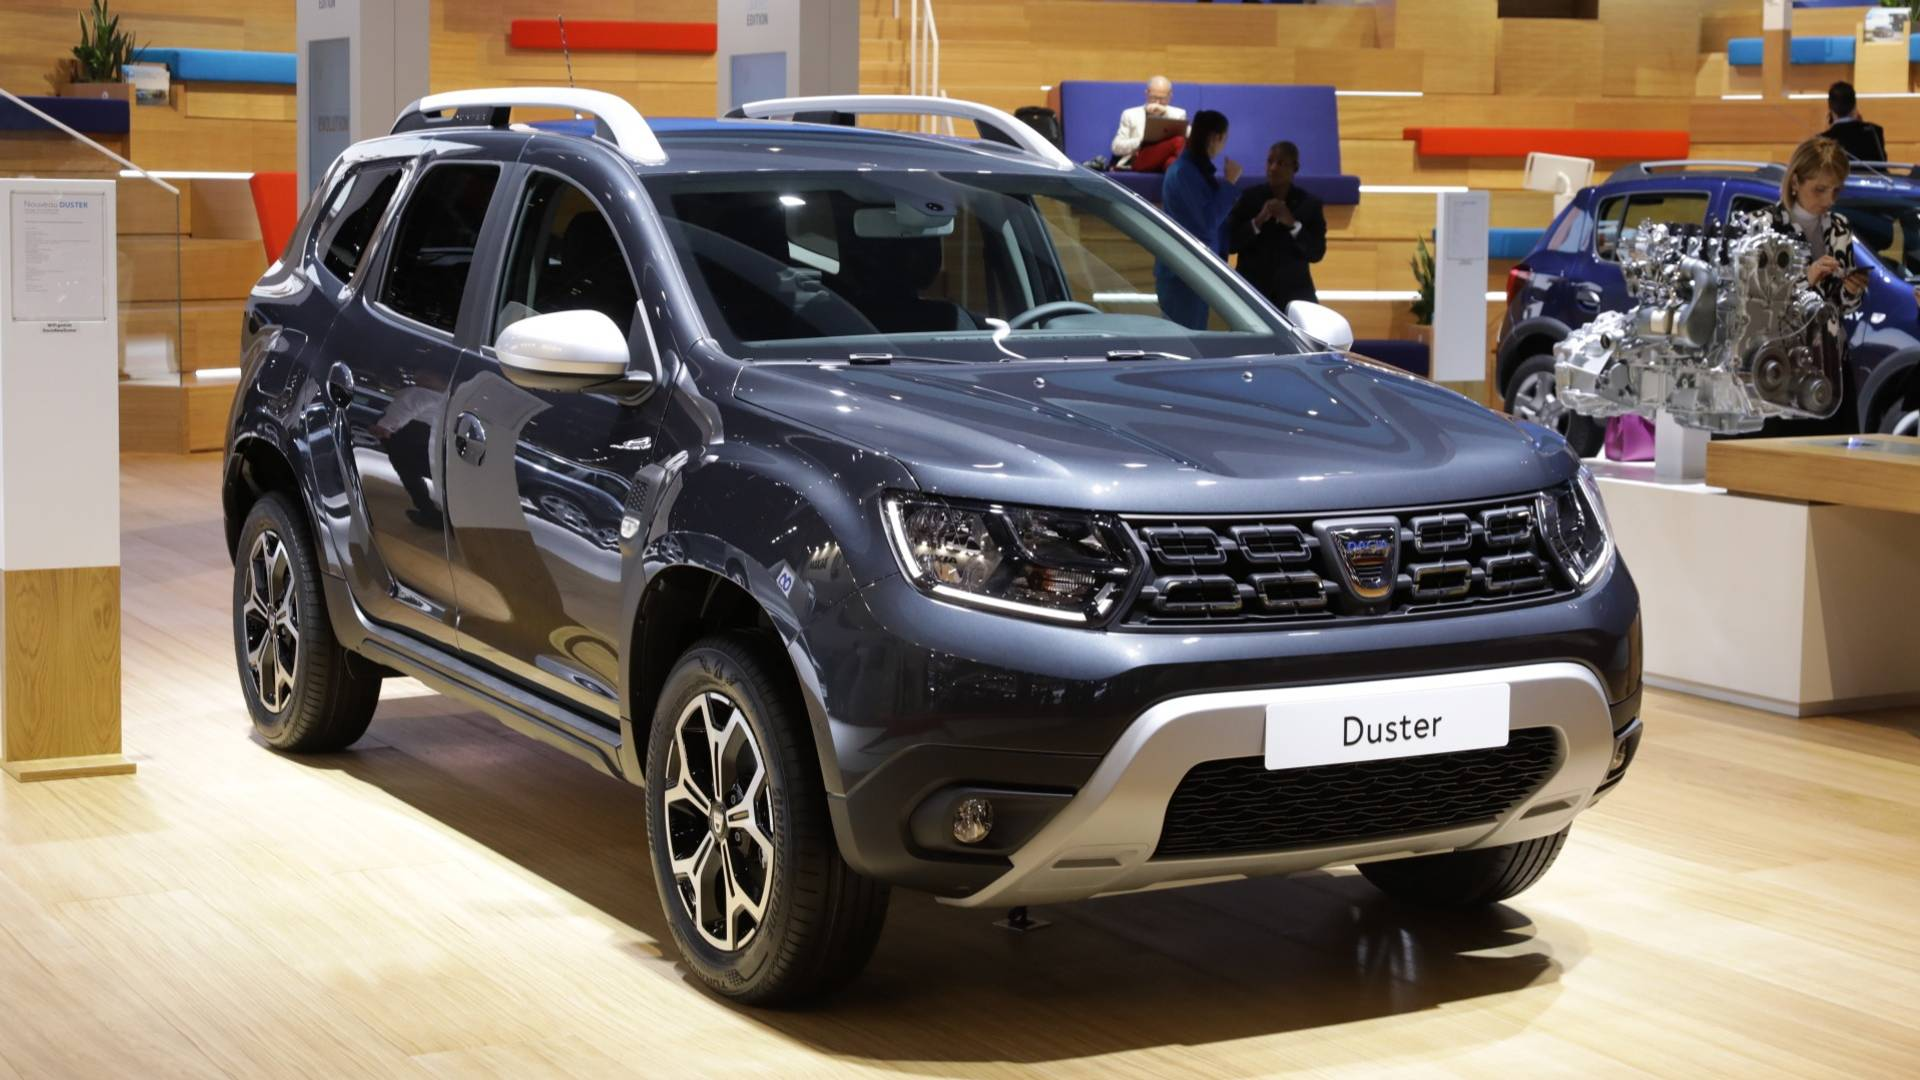 2a74f78bf46 Dacia Duster Gains 1.3-Liter Gasoline Engine With Up To 150 HP